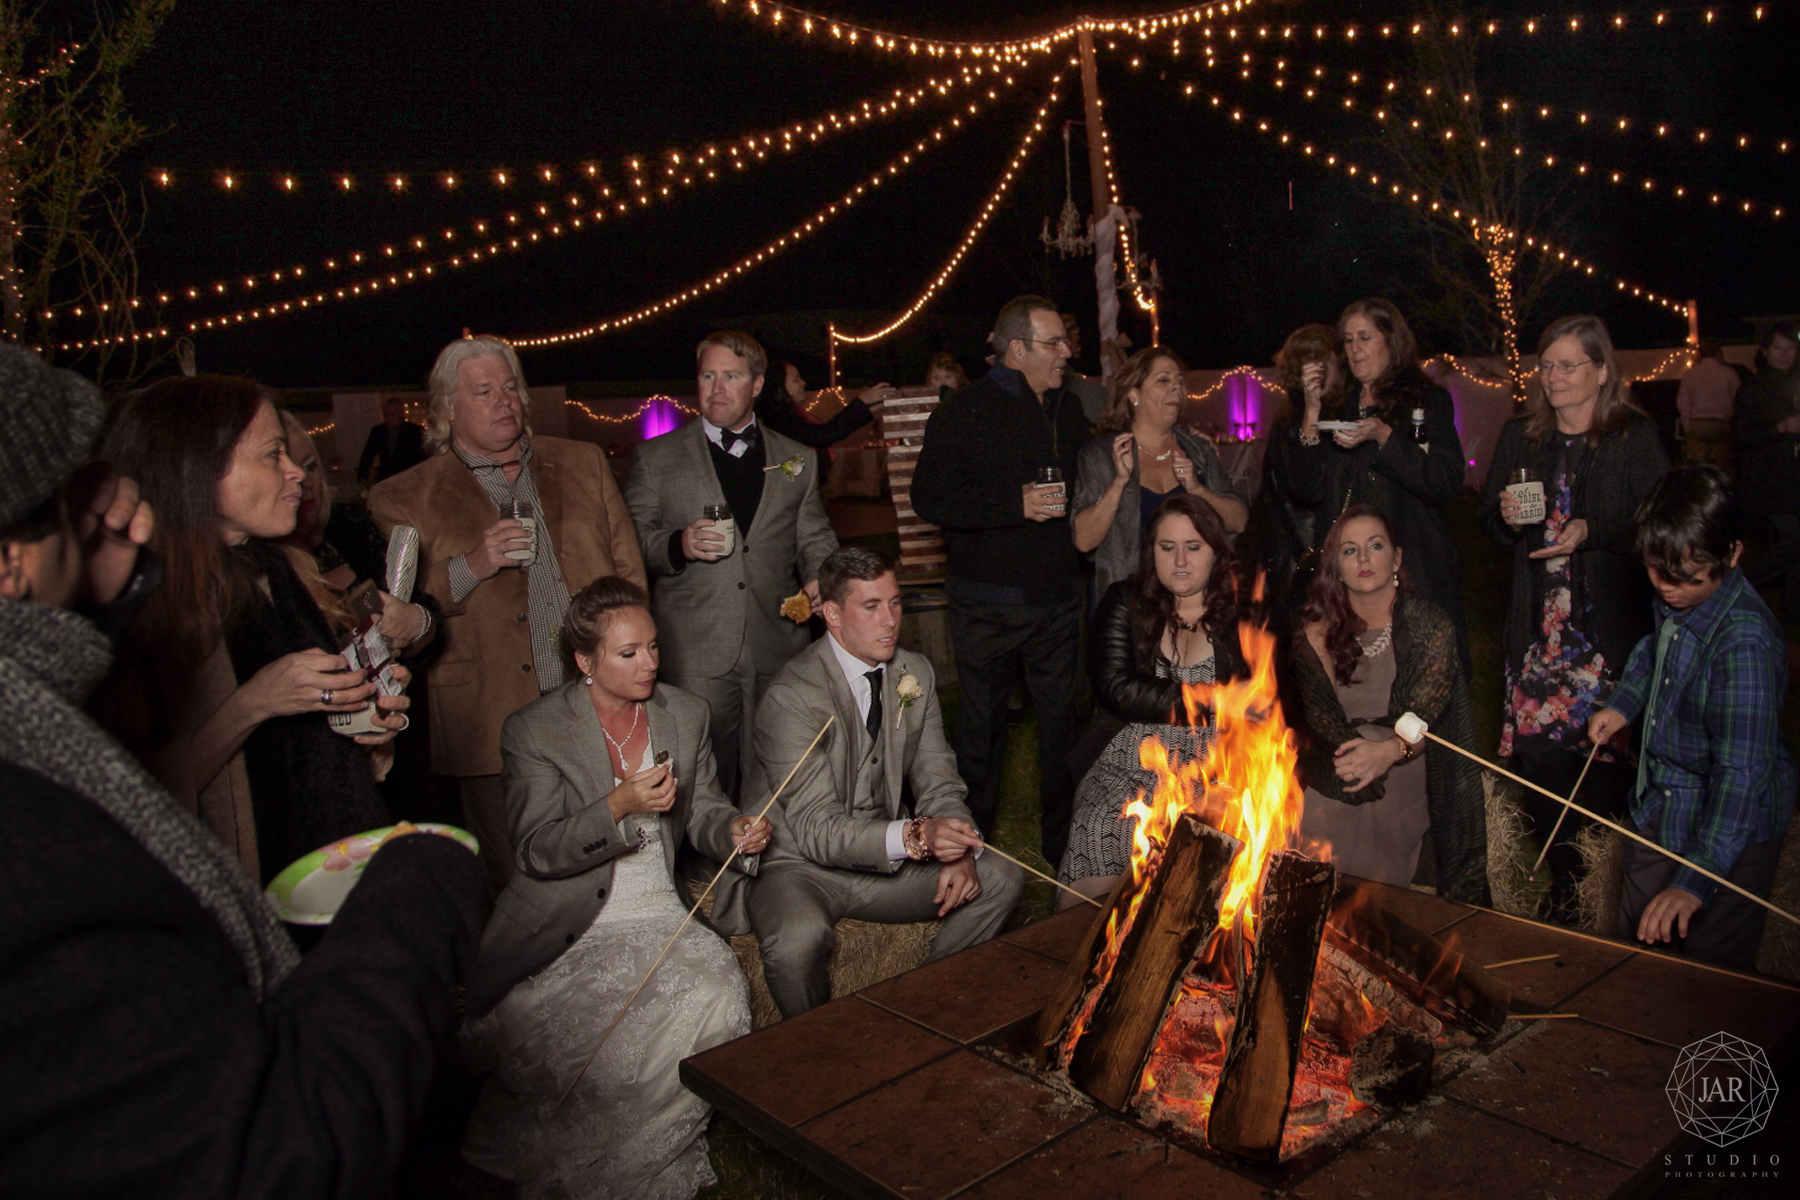 57-wedding-ideas-bonfire-marshmallow-smores-jarstudio.JPG